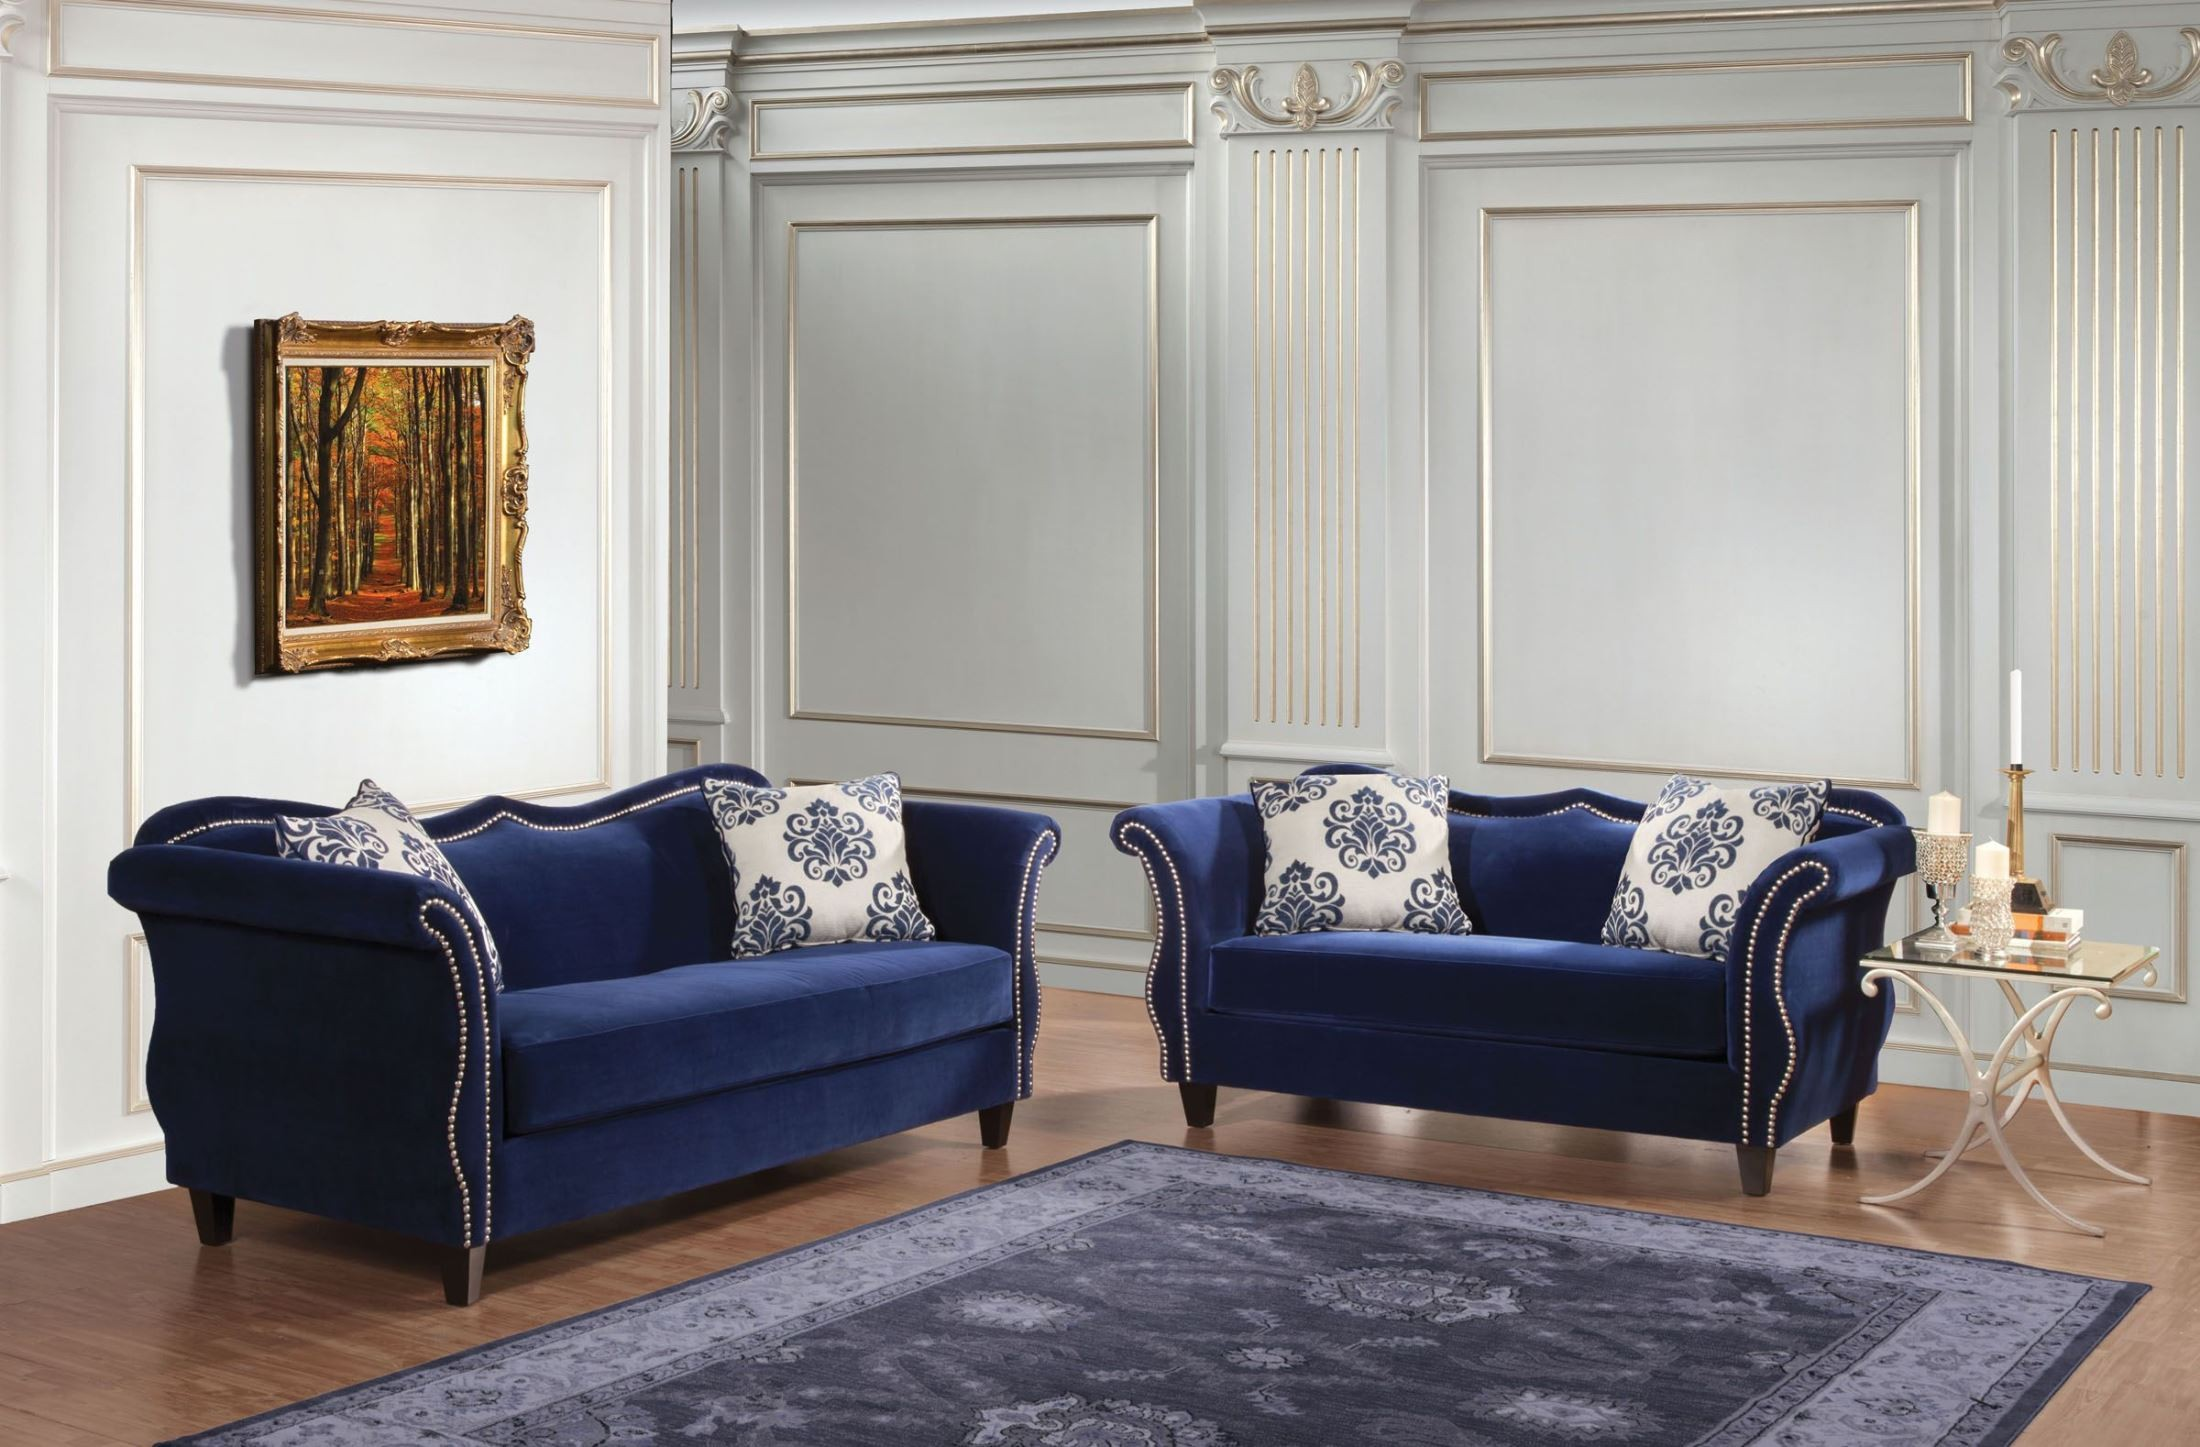 Zaffiro royal blue living room set sm2231 sf furniture for Living room furniture sets